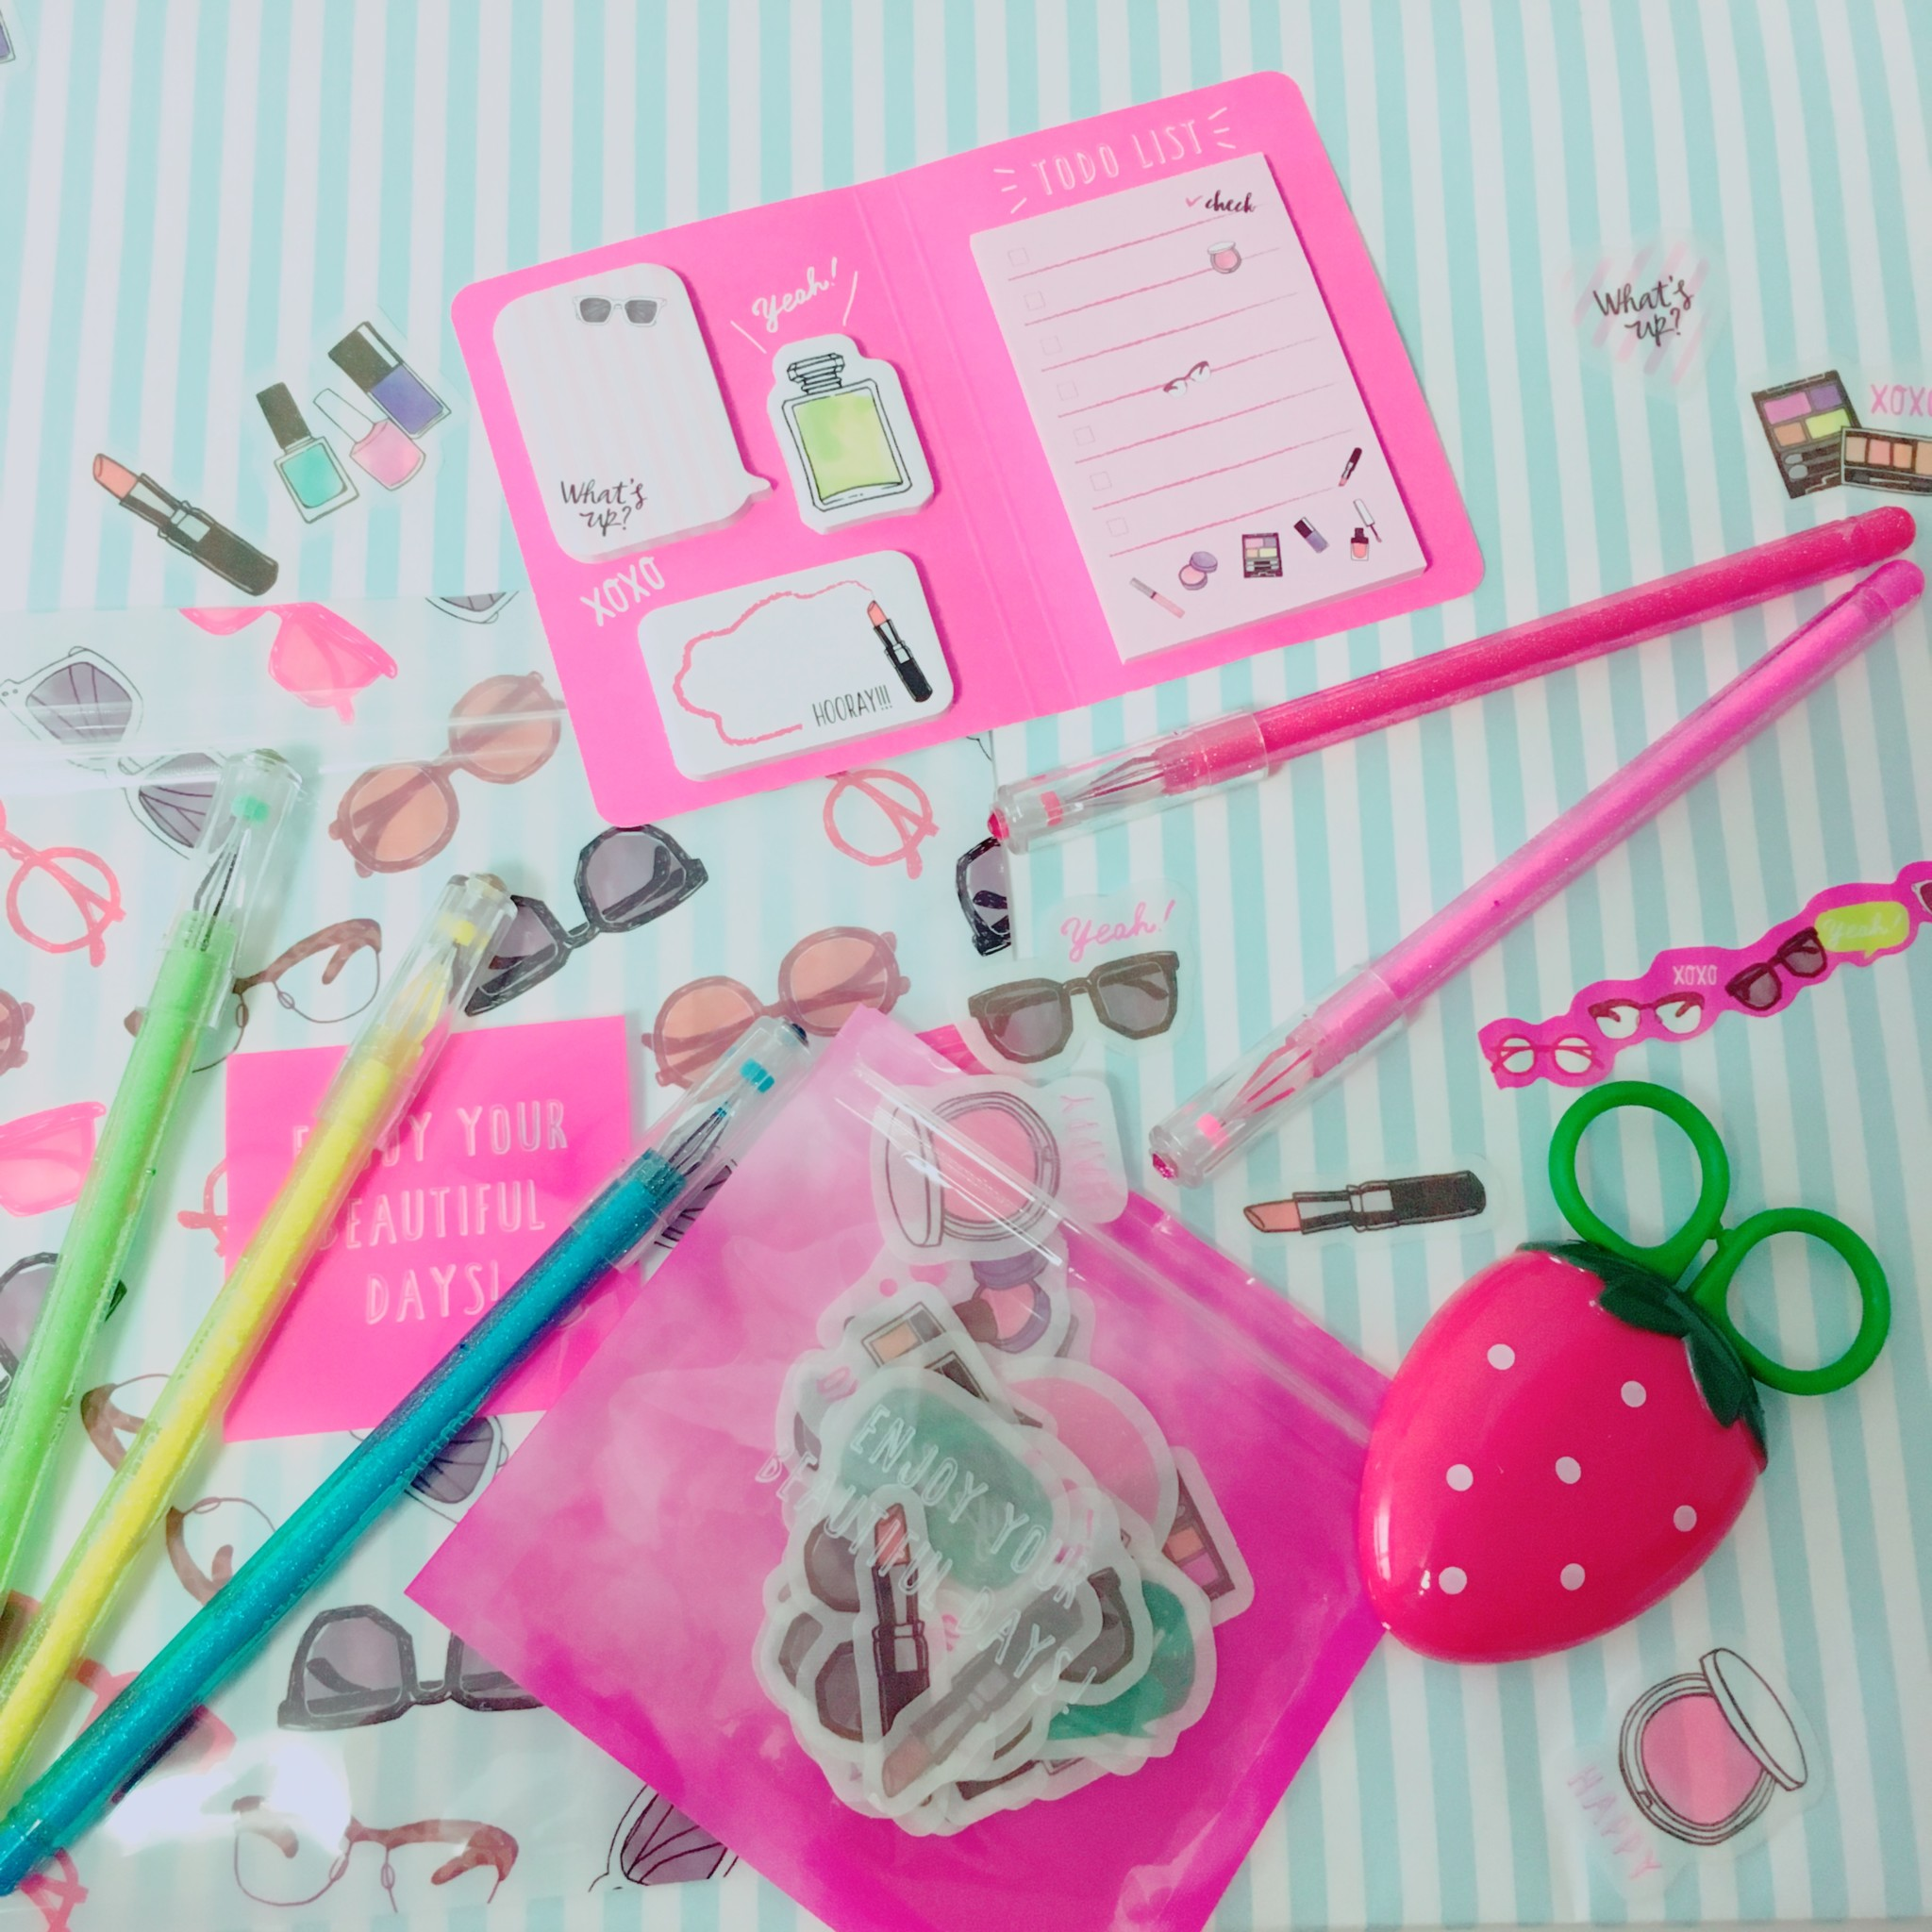 all this for 1 aesthetic and cheap stationary lafary